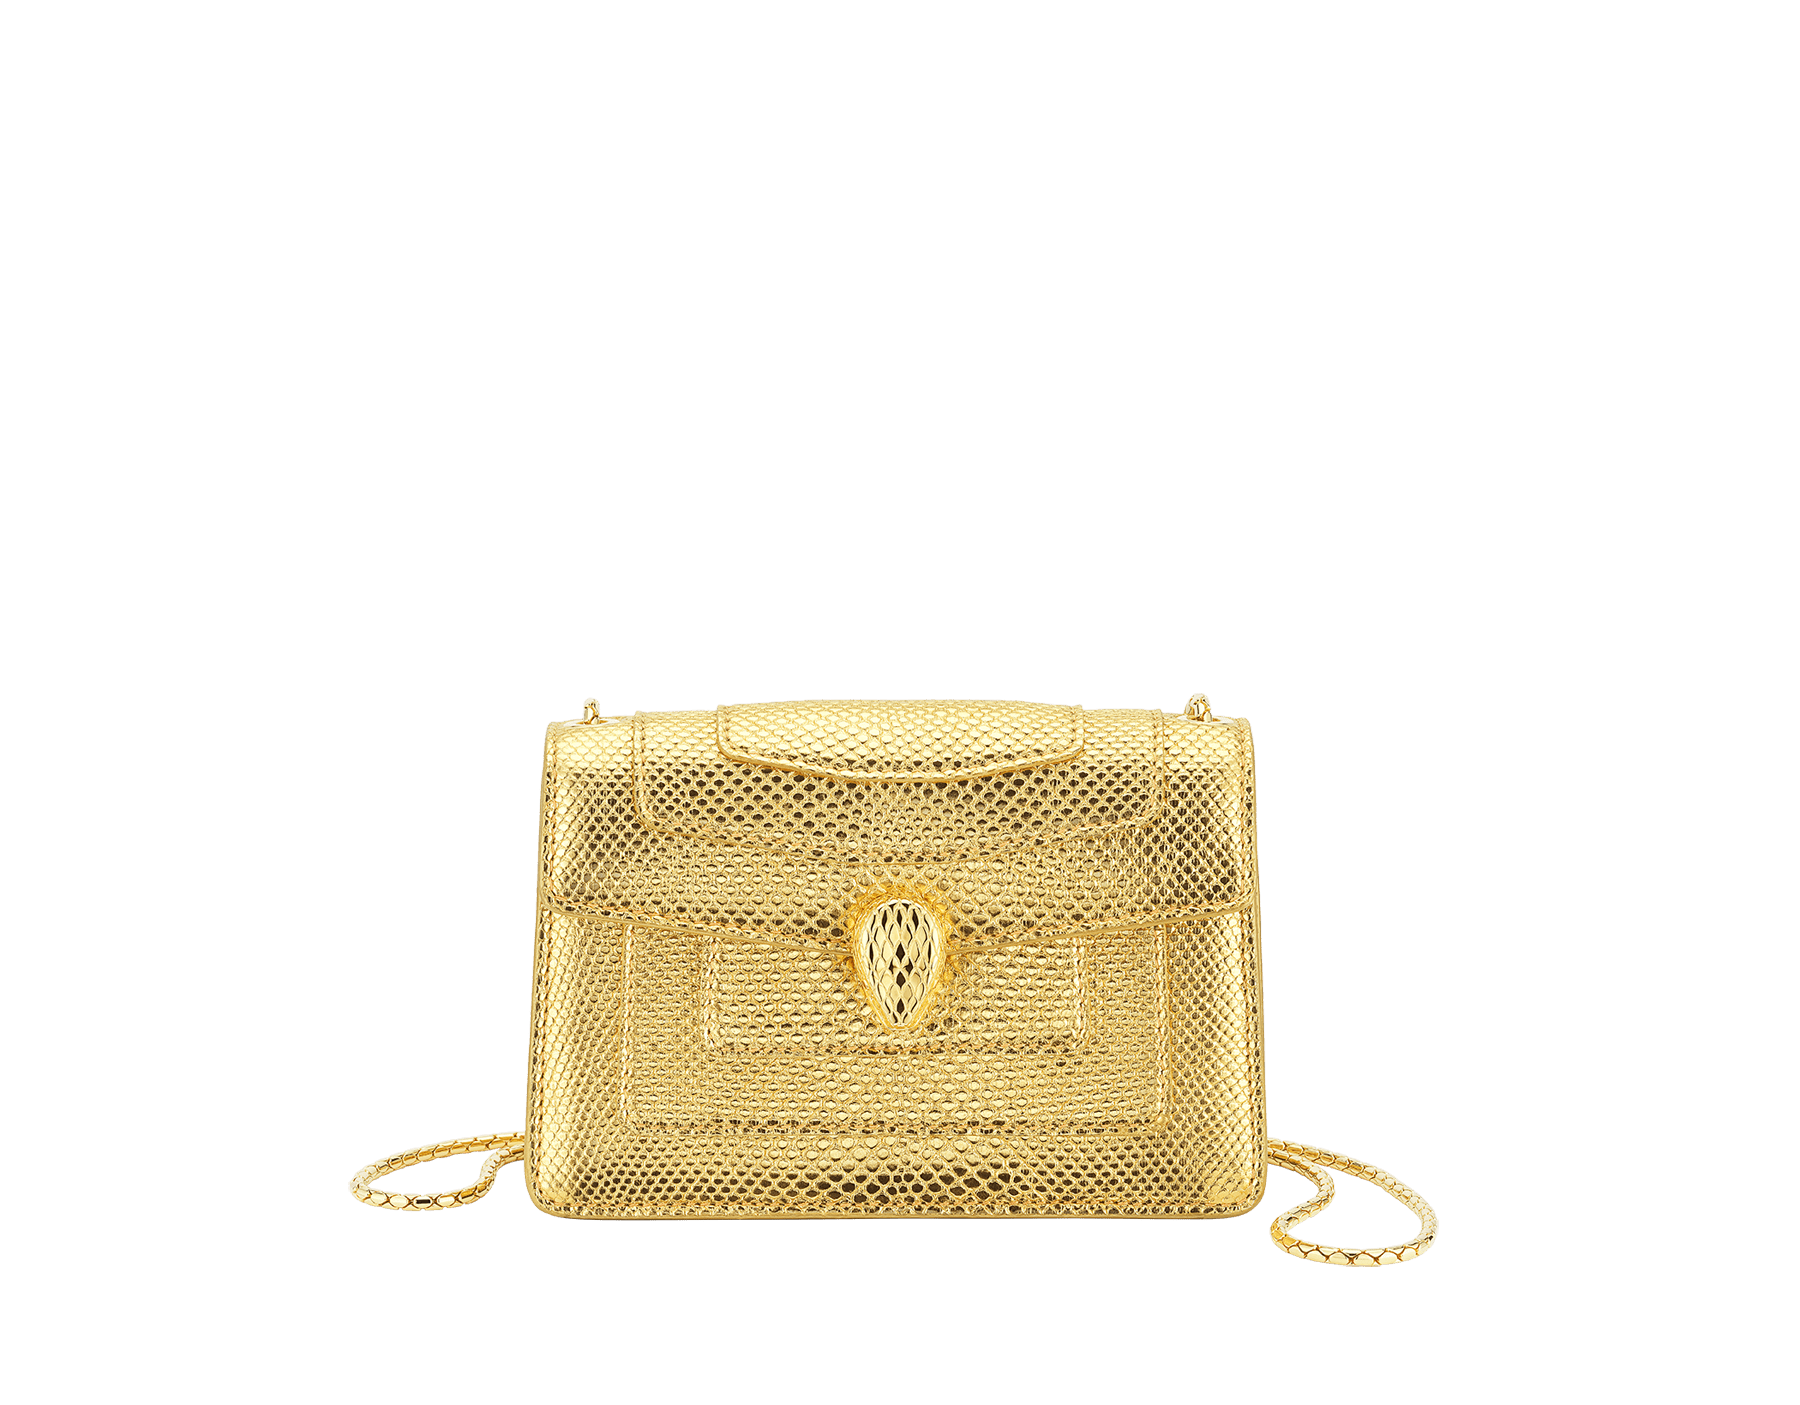 """Serpenti Forever"" mini crossbody bag in ""Molten"" gold karung skin with black nappa leather inner lining, offering a touch of radiance for the Winter Holidays. New Serpenti head closure in gold-plated brass, complete with ruby-red enamel eyes. 986-MolK image 1"